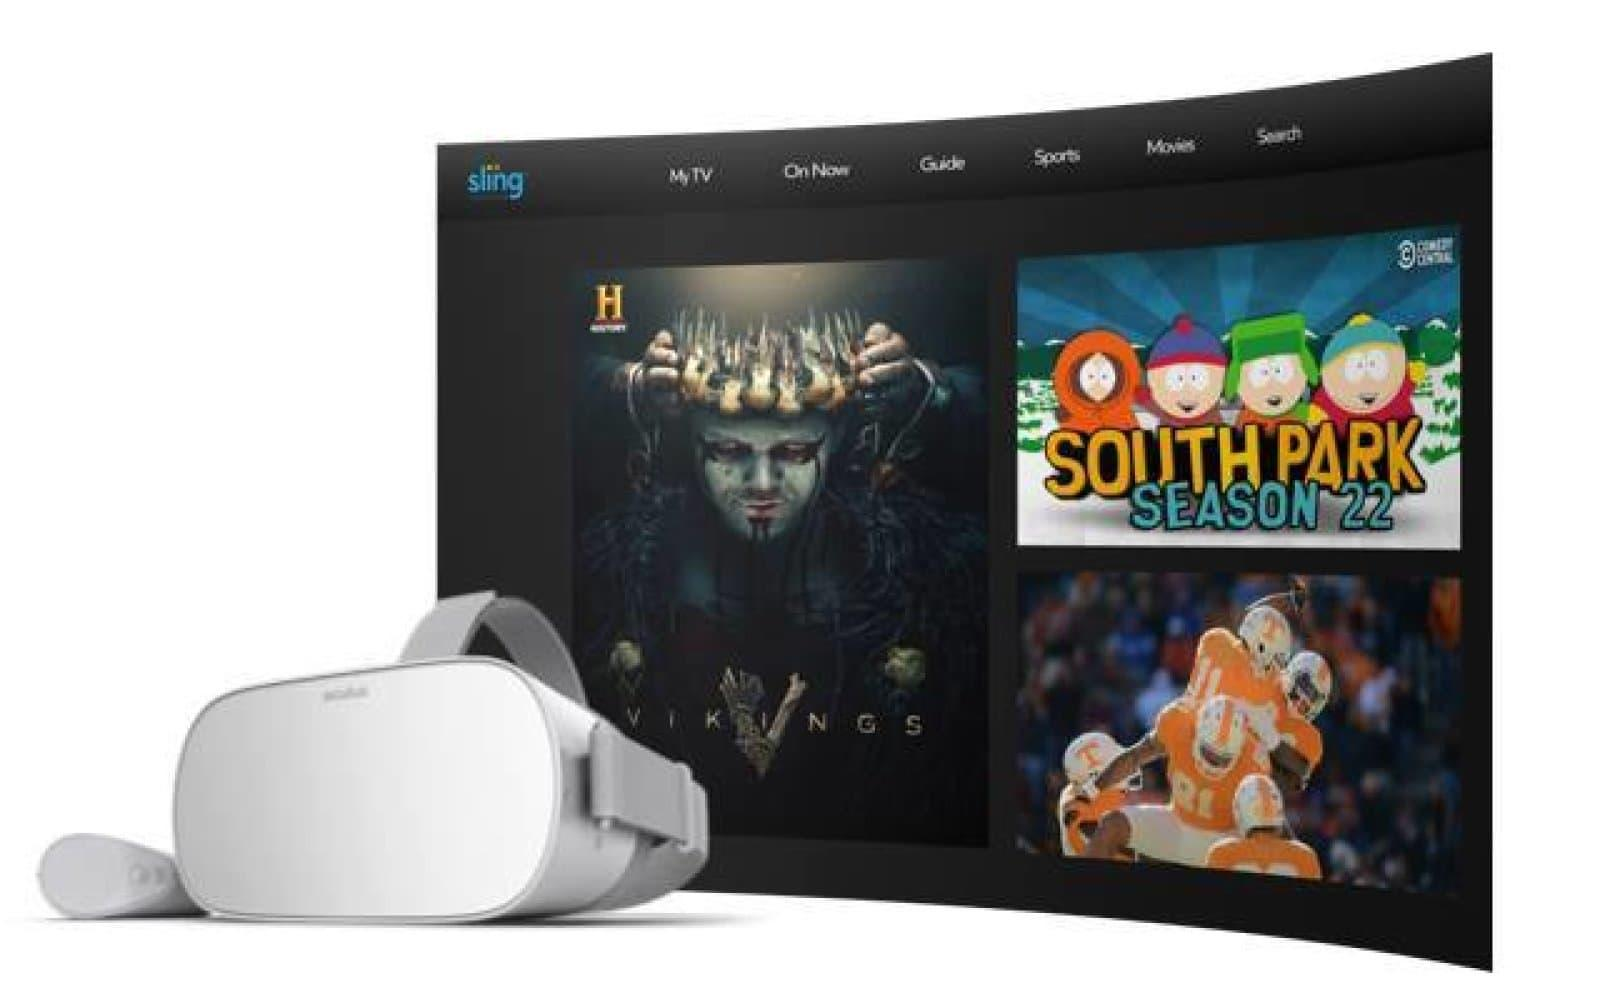 Sling Adds Social Tv And Movie Viewing To Its Oculus Go App Engadget